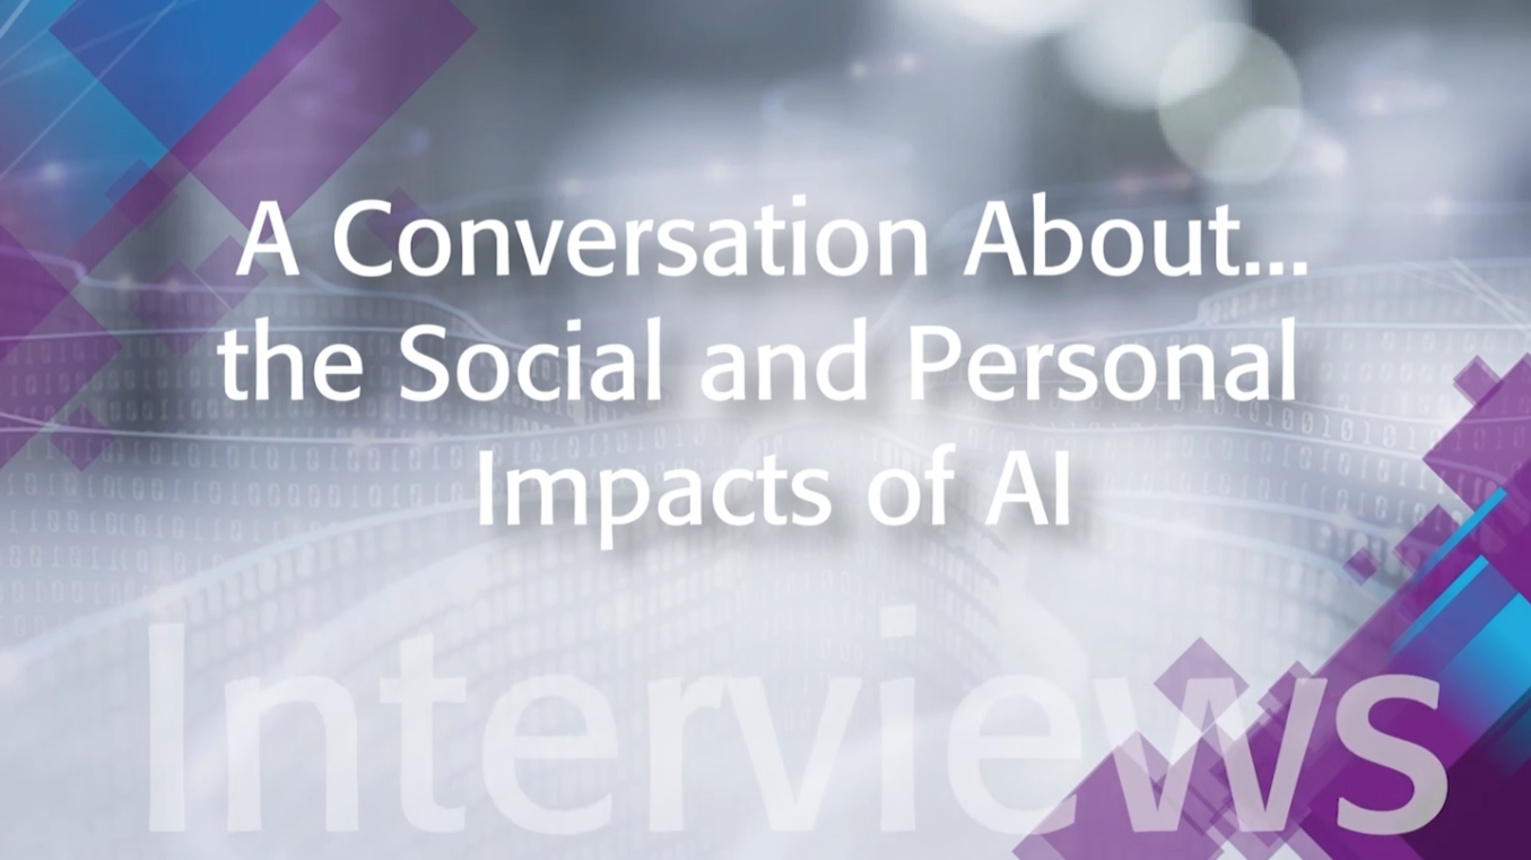 A Conversation About the Social and Personal Impacts of AI: IEEE TechEthics Interview